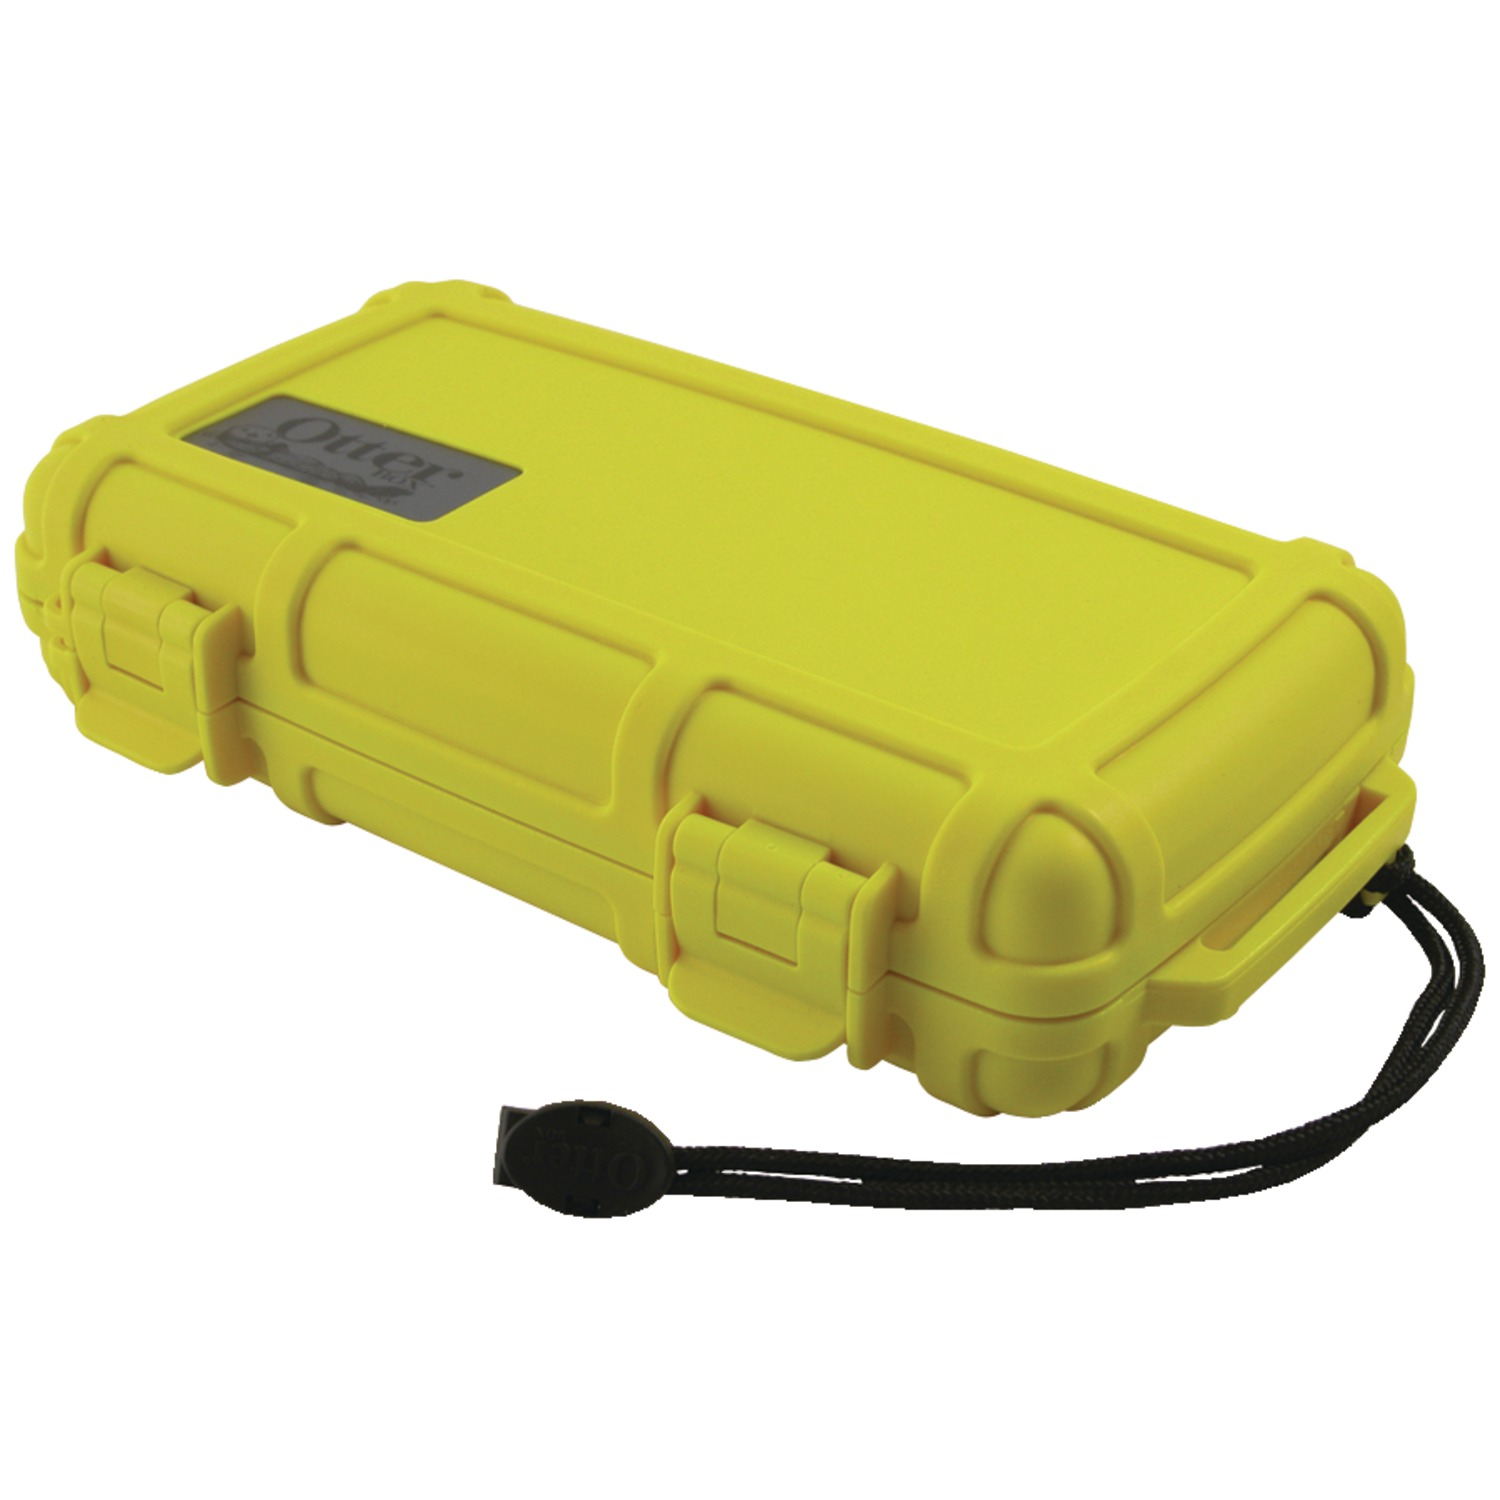 Seal-line dry bags, map cases, dry cases for phones, ipods & a variety of electronic devices, Portage packs & otter dry boxes, all in many sizes. Roof racks & cargo carriers We stock yakima, malone and riverside car rack systems.